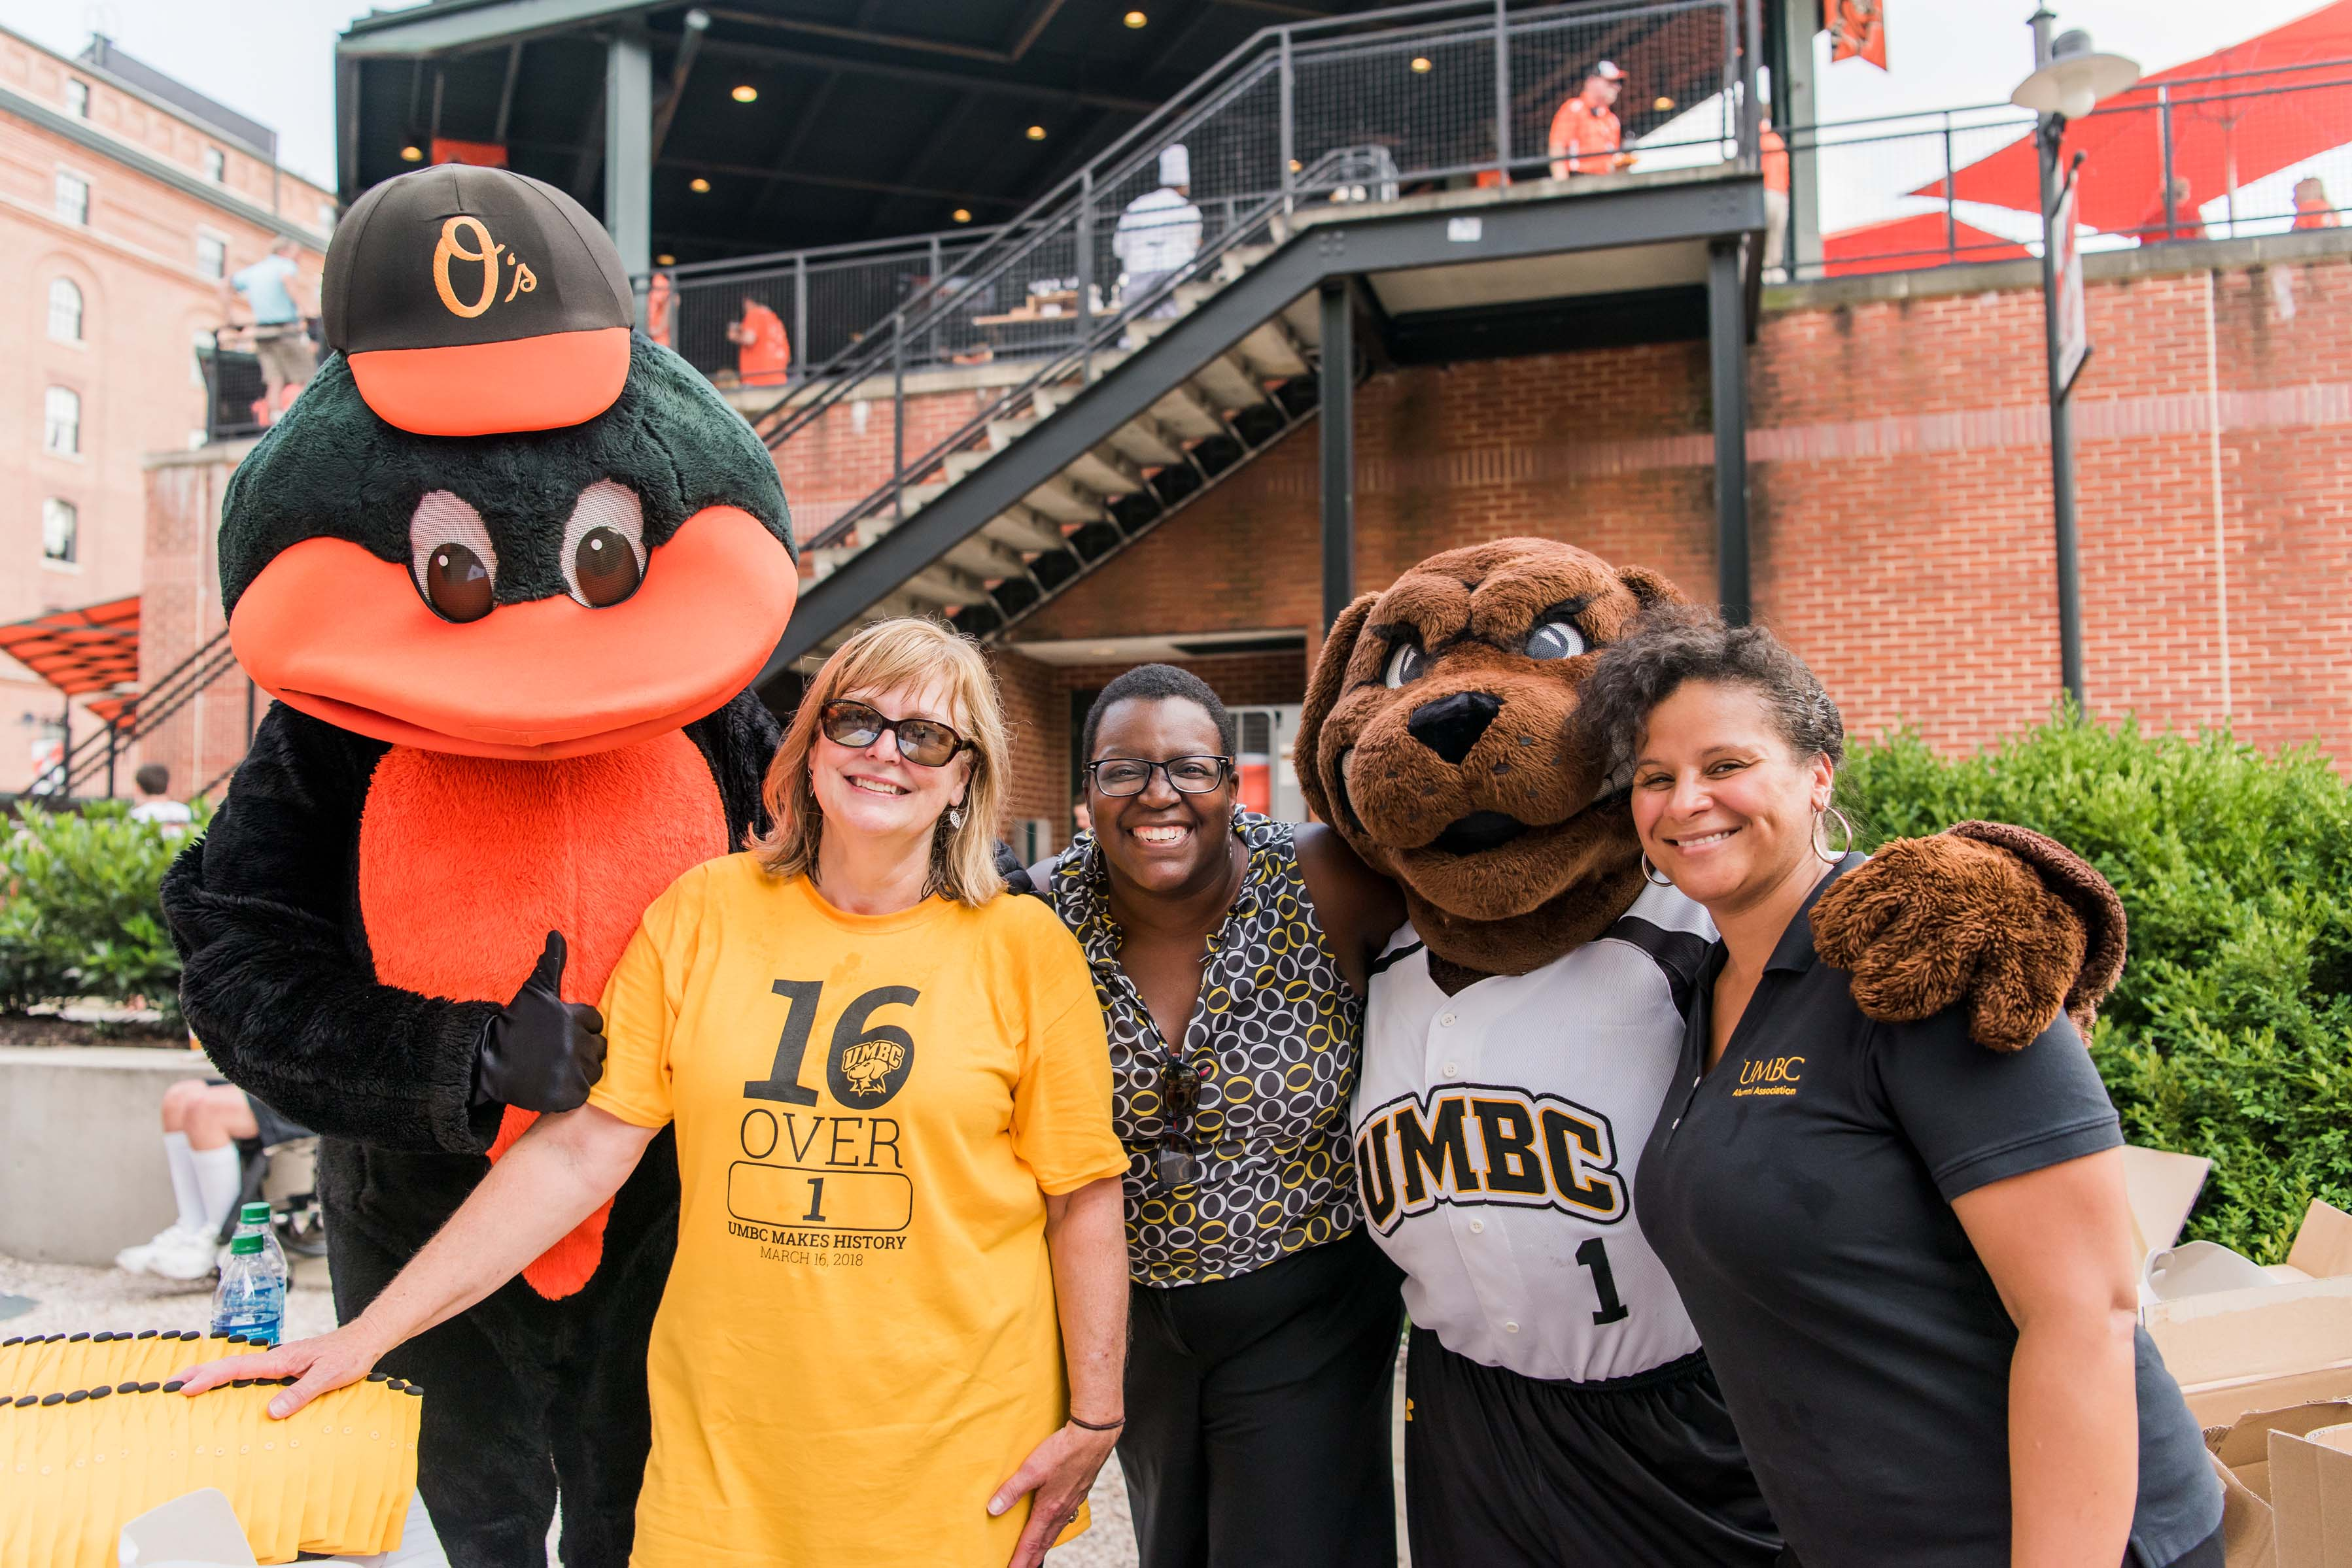 Orioles and UMBC Mascot pose with fans